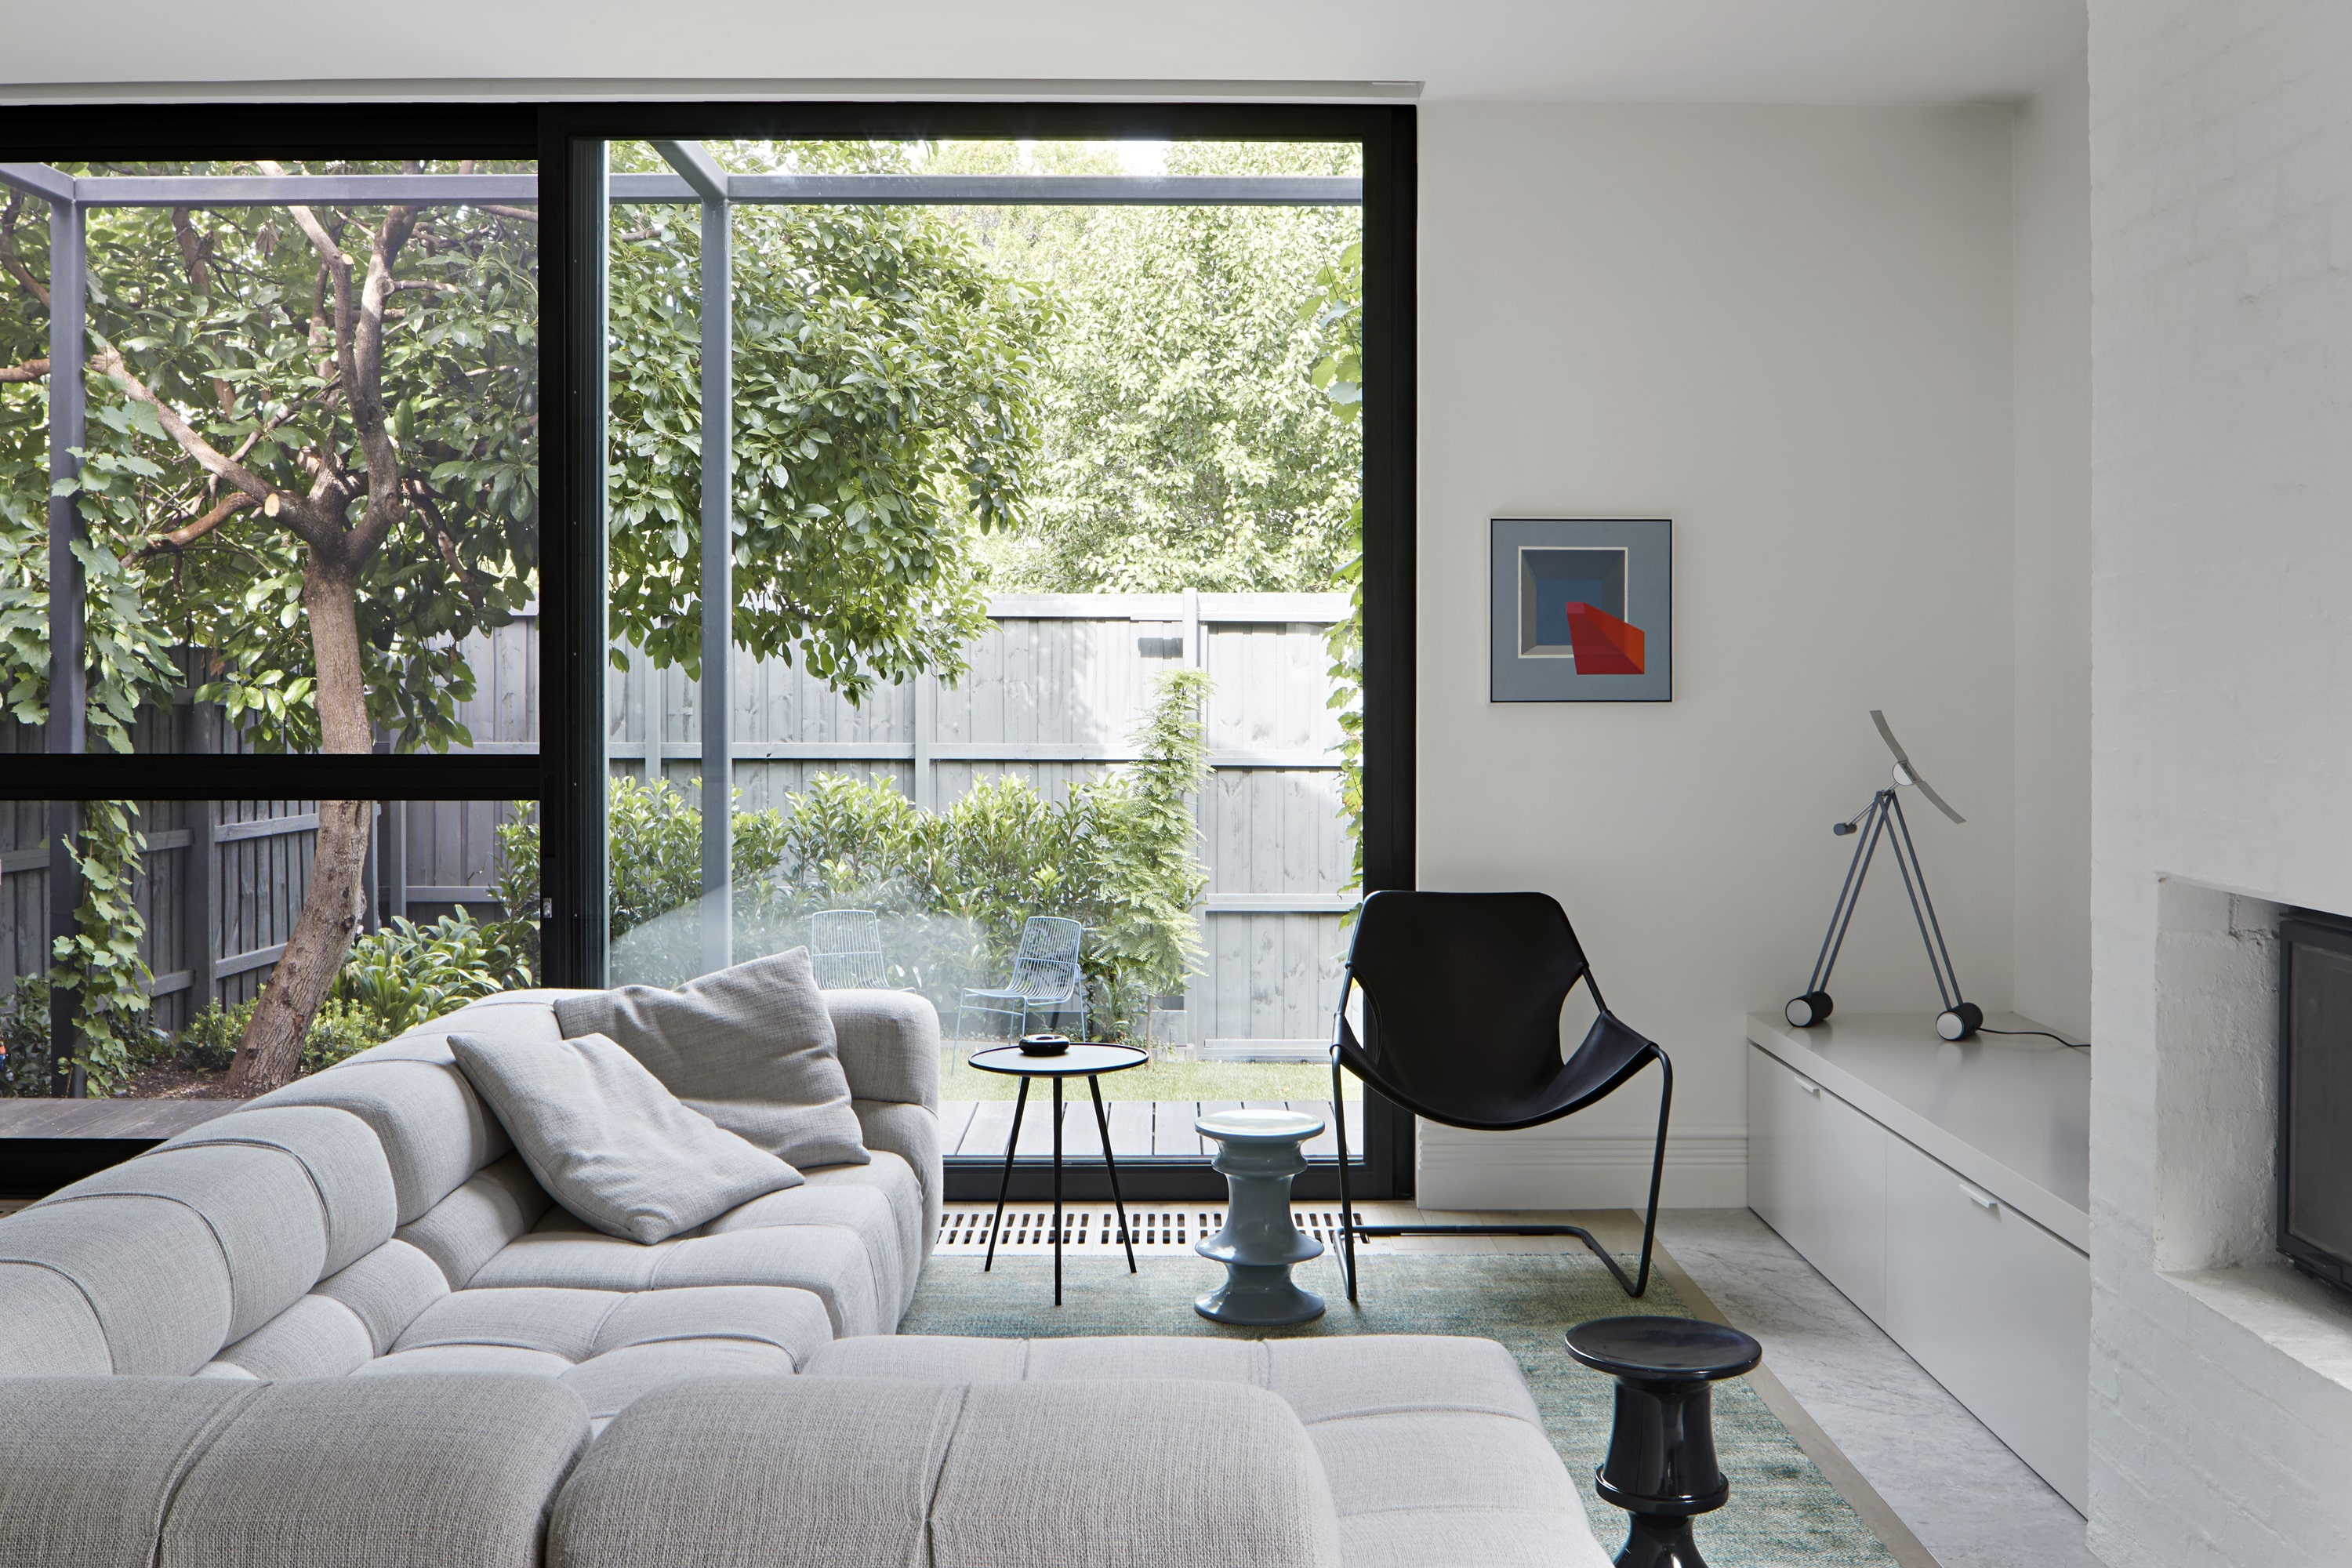 The Home Is Enlivened By Their Fascinating Art Collection, Which Is Offset By The Neutral Material Palette.